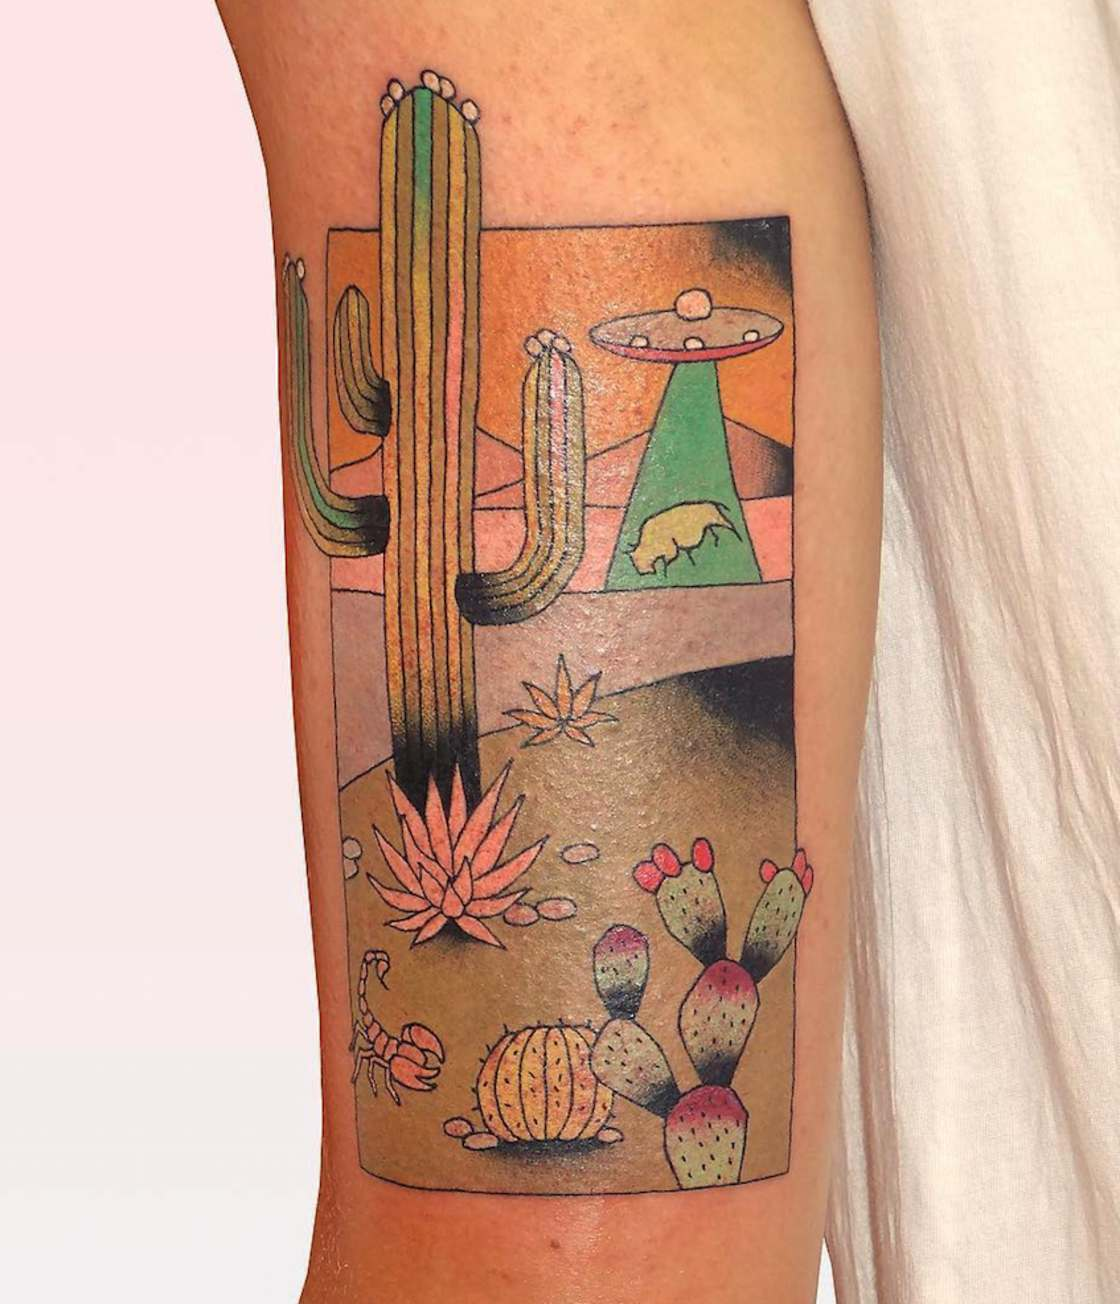 Brindi Tattoo - The pop and colorful tattoos from south of France